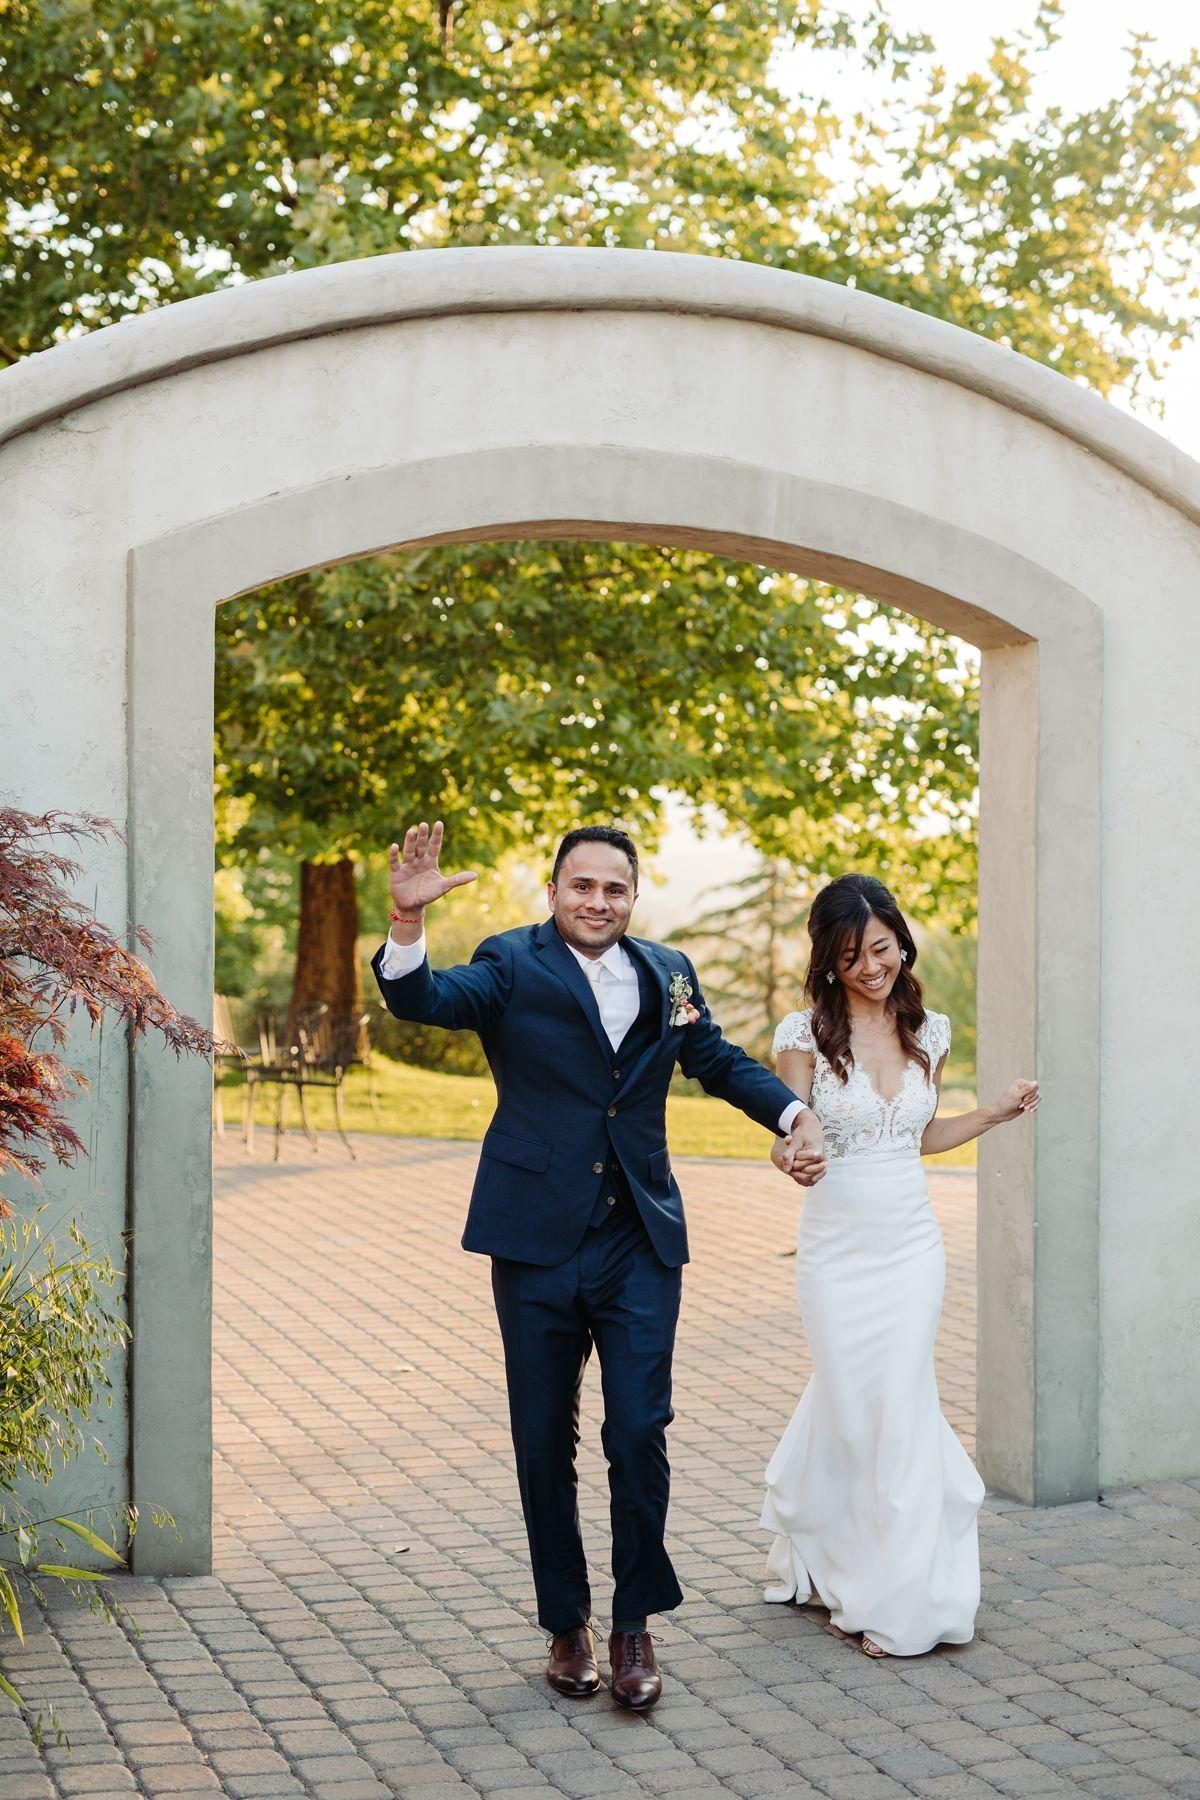 terra-blanca-winery-wedding-washington-seattle-cameron-zegers-0010